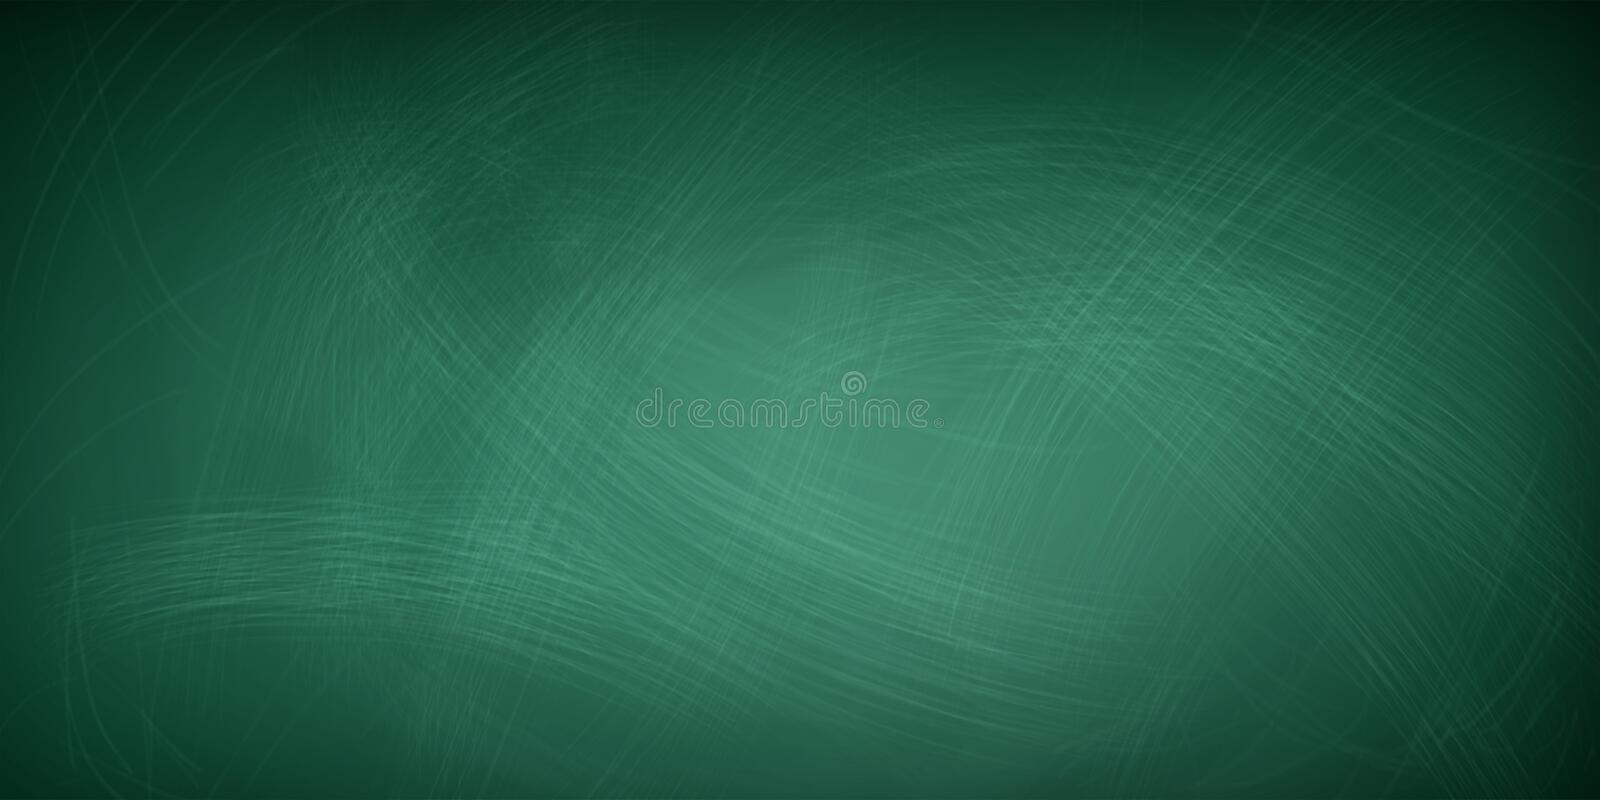 Rubbed out chalk on a greenboard - background concept royalty free stock photography